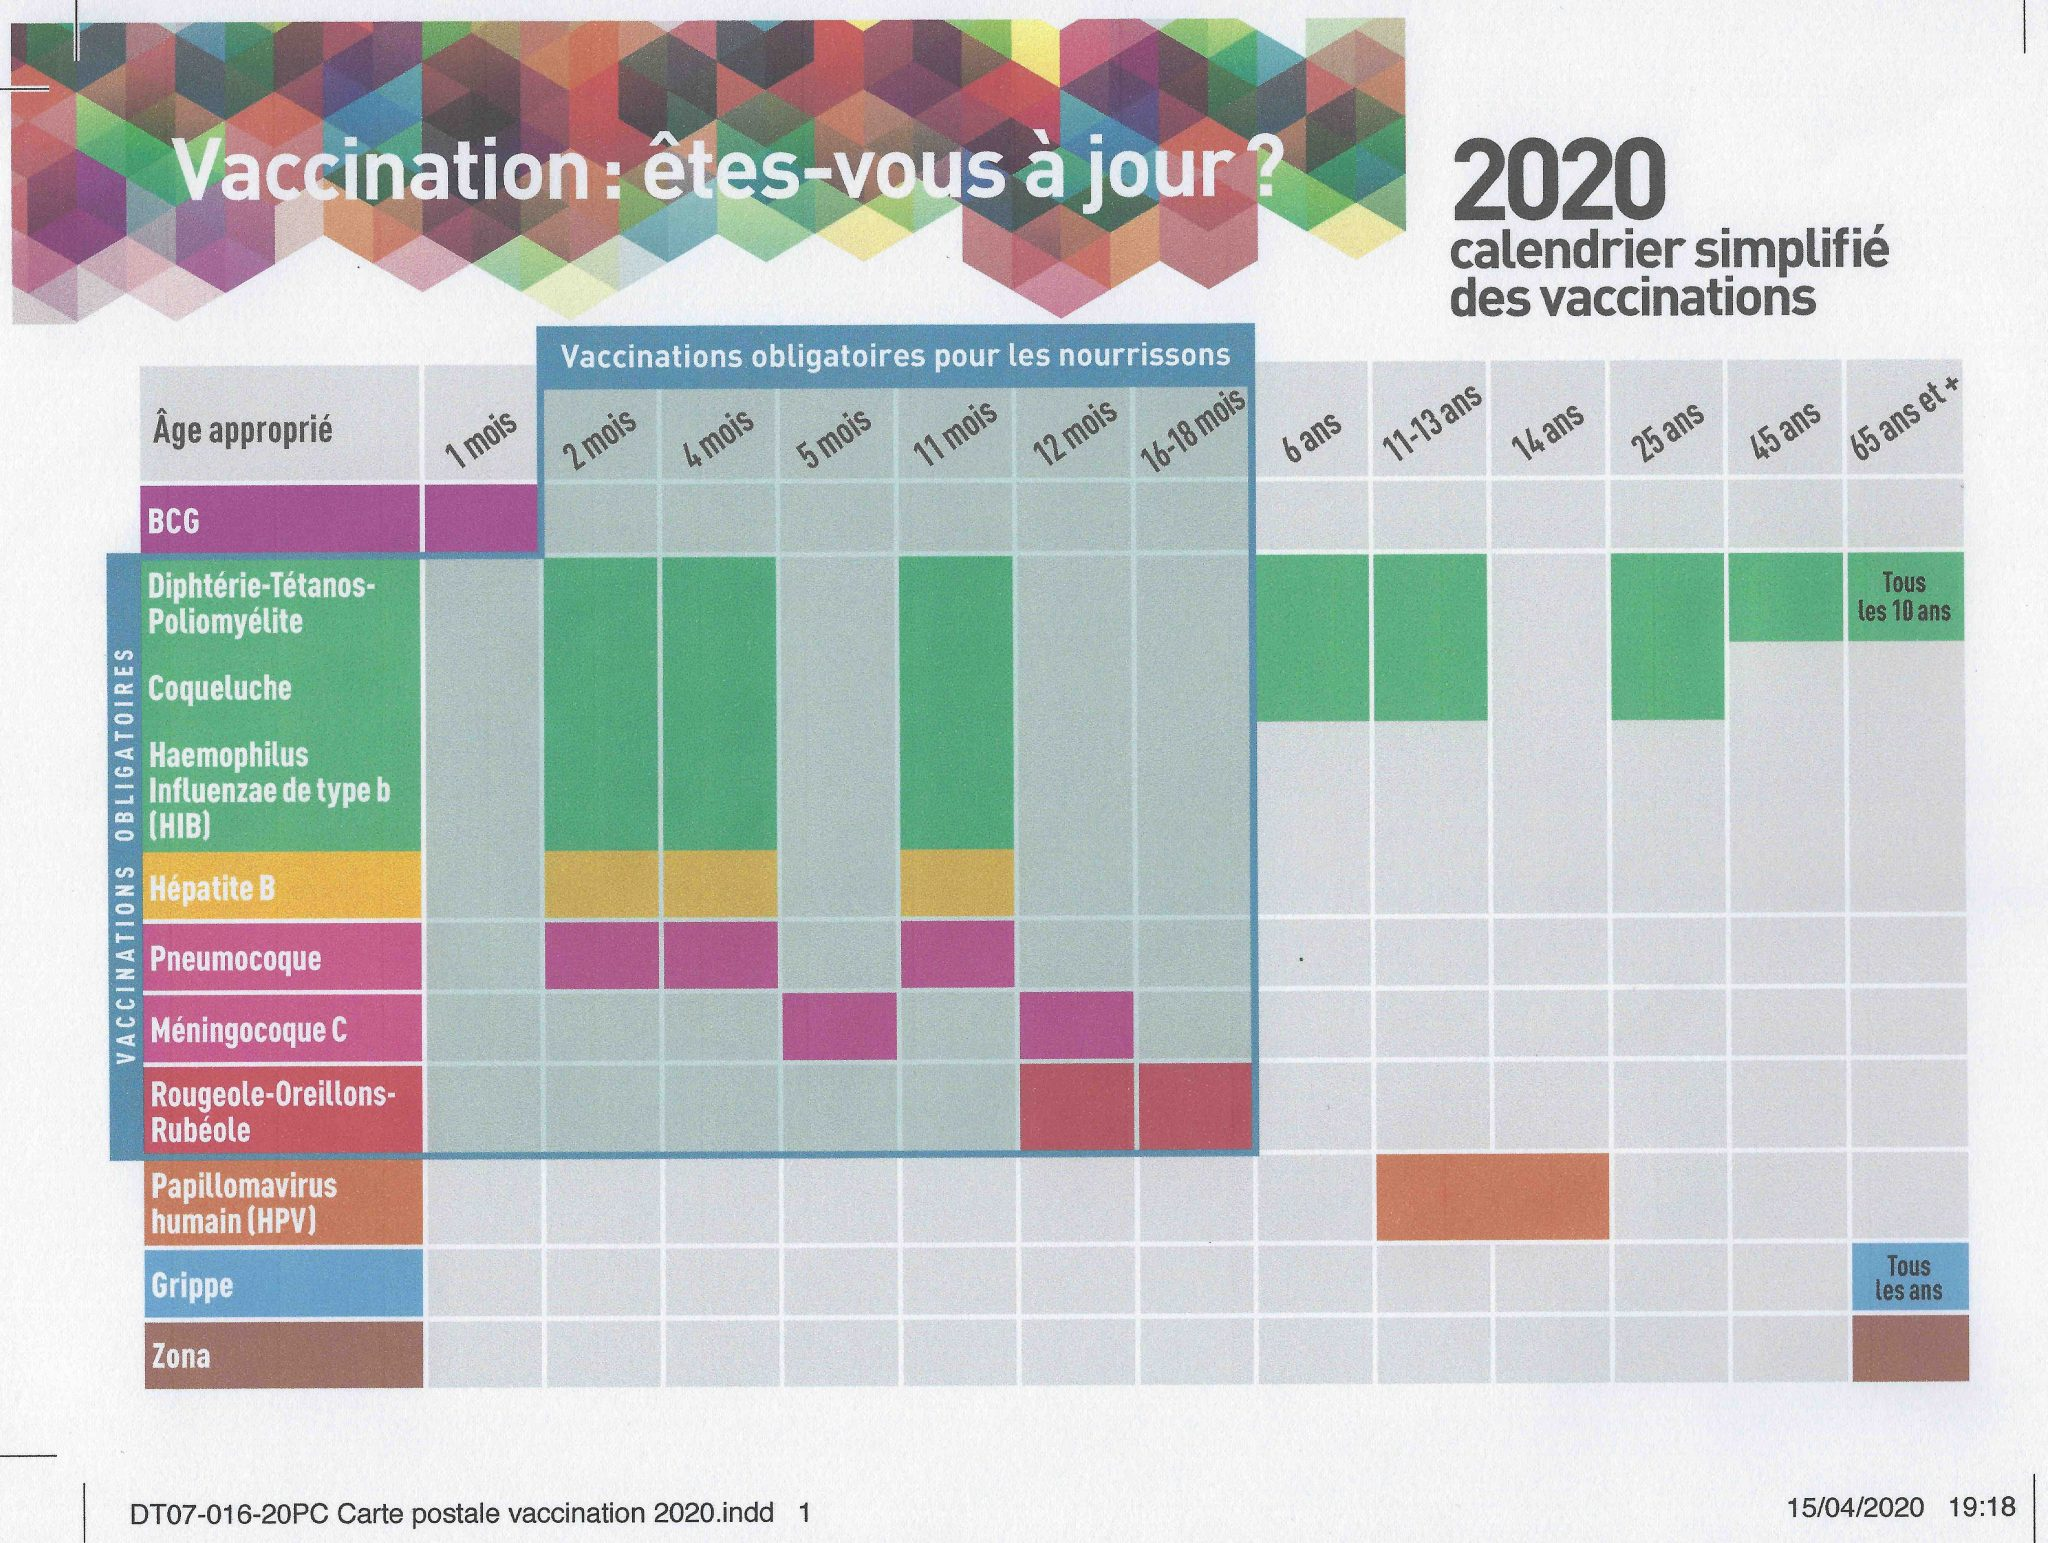 Vaccination Calendar - French Ministry of Health